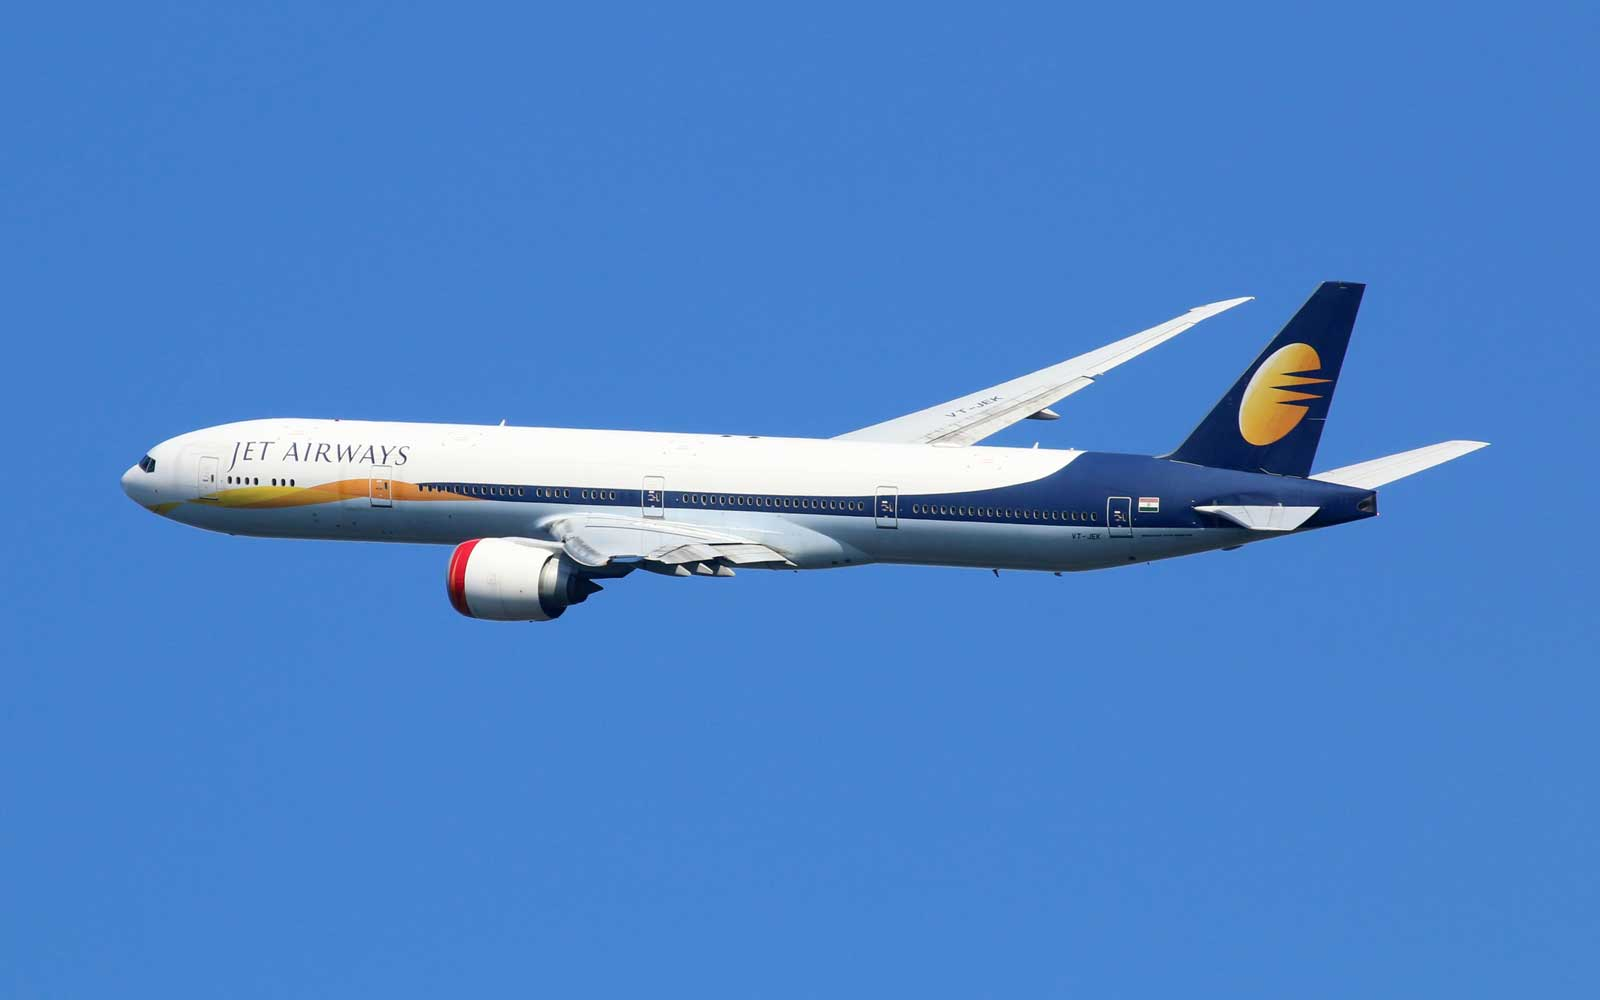 A Jet Airways Boeing 777-300ER with the registration VT-JEK taking off from London Heathrow Airport (LHR) in the United Kingdom. Jet Airways is the largest private carrier airline in India based in Mumbai.